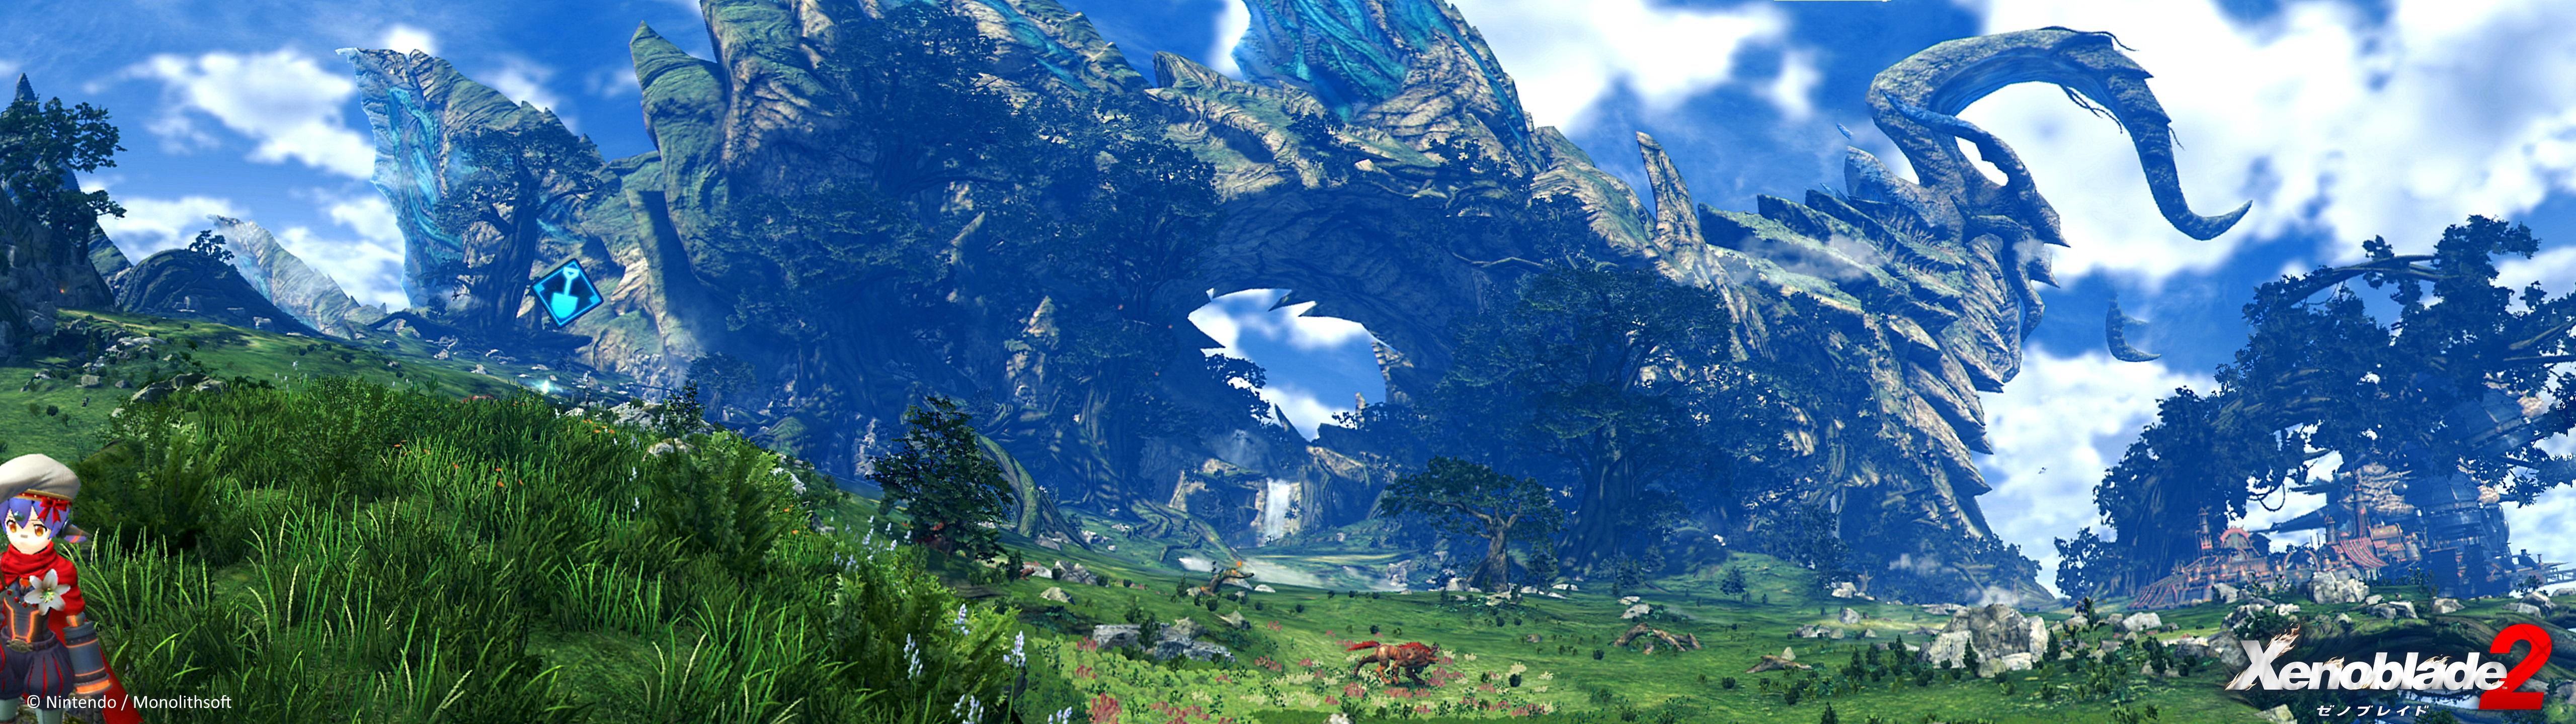 Xenoblade 57417 Hd Wallpaper Backgrounds Download